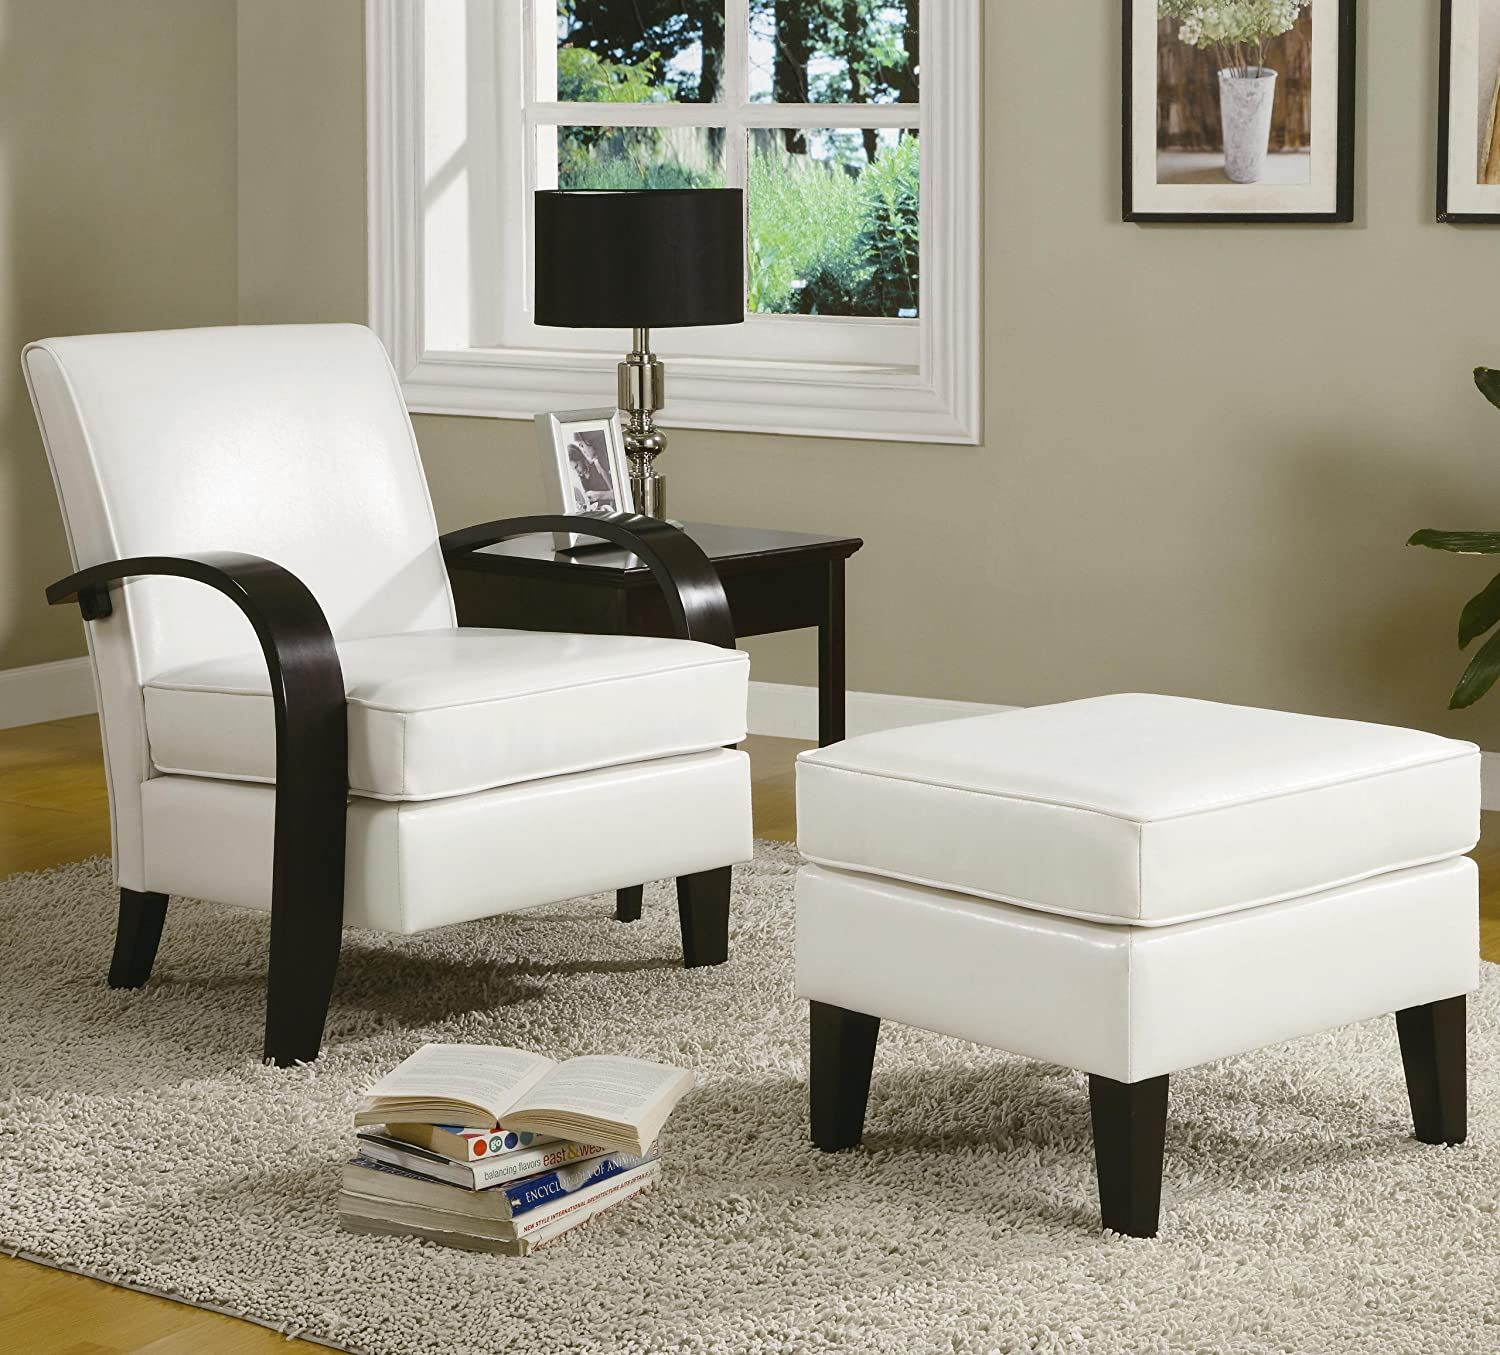 Superior Amazon.com: Roundhill Furniture Wonda Bonded Leather Accent Arm Chair With  Ottoman, White: Kitchen U0026 Dining Part 31